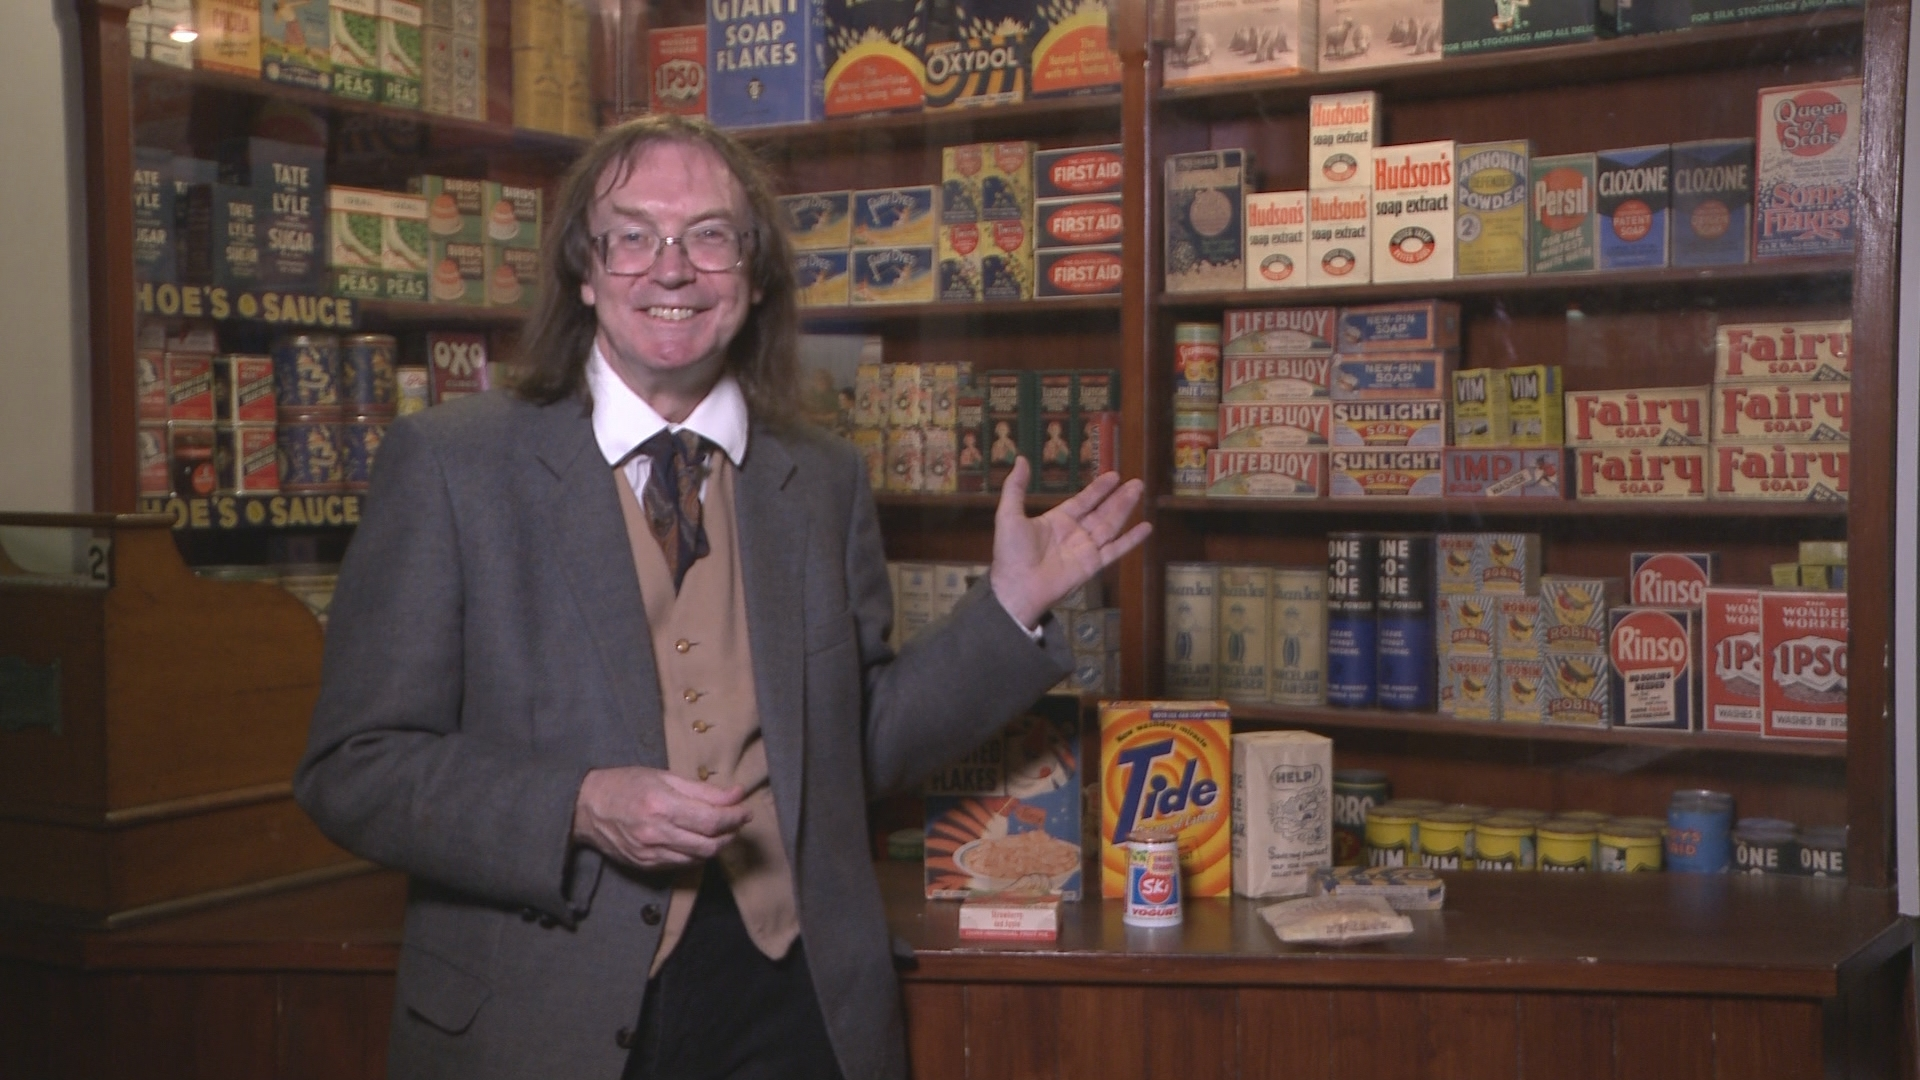 Museum of Brands stars in 'Professor Hutton's Curiosities'